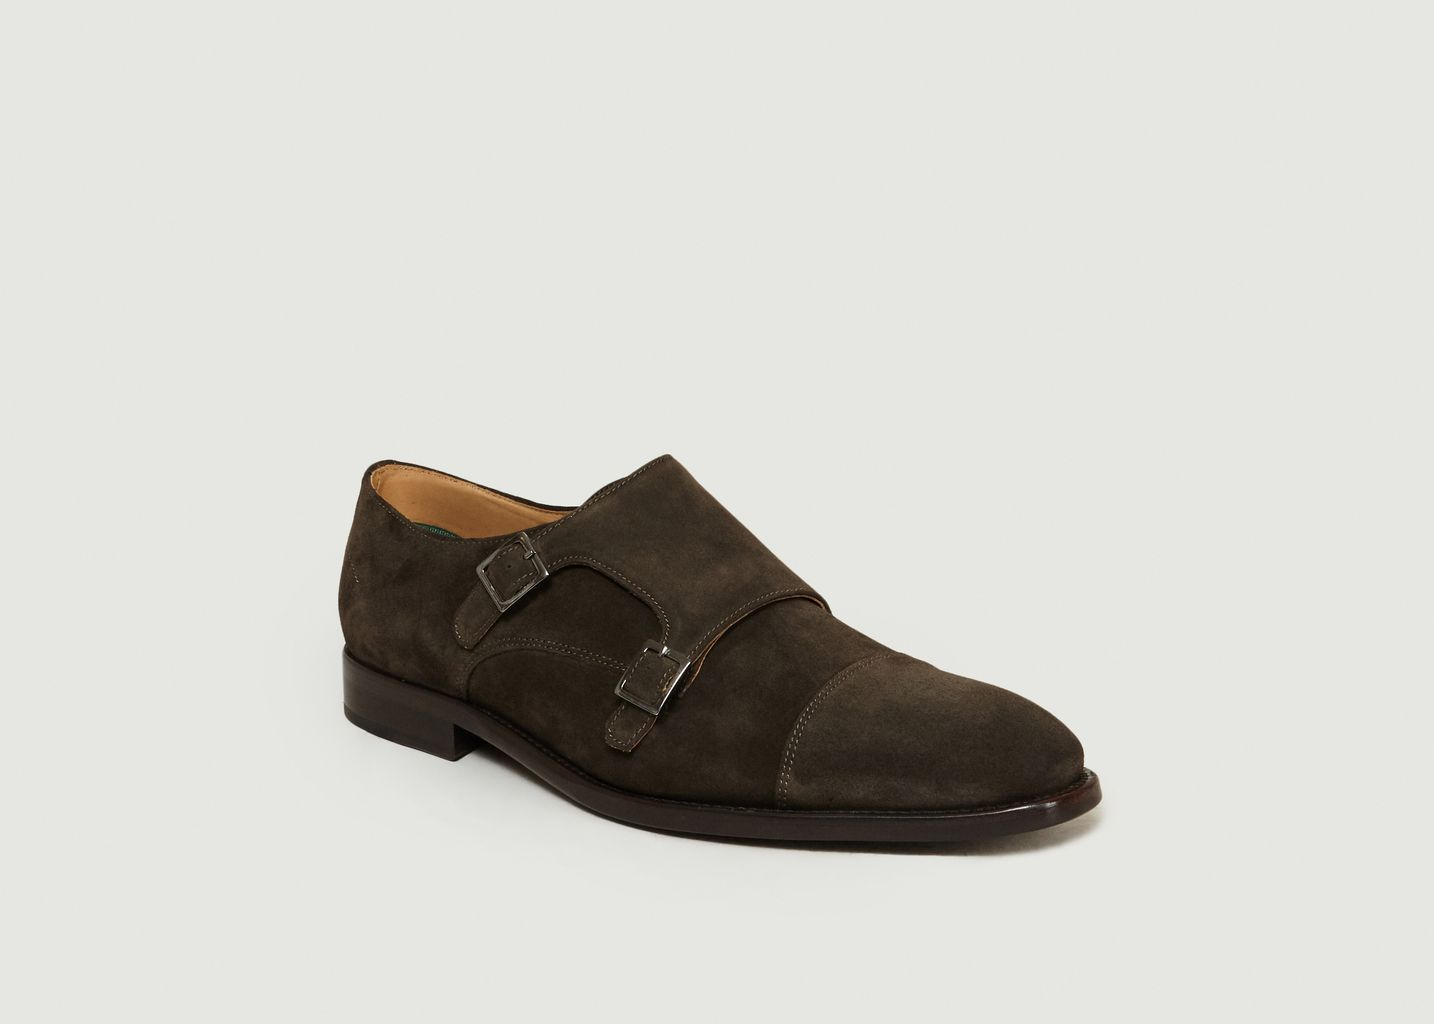 Chaussures Double Boucle Frank - PS by PAUL SMITH